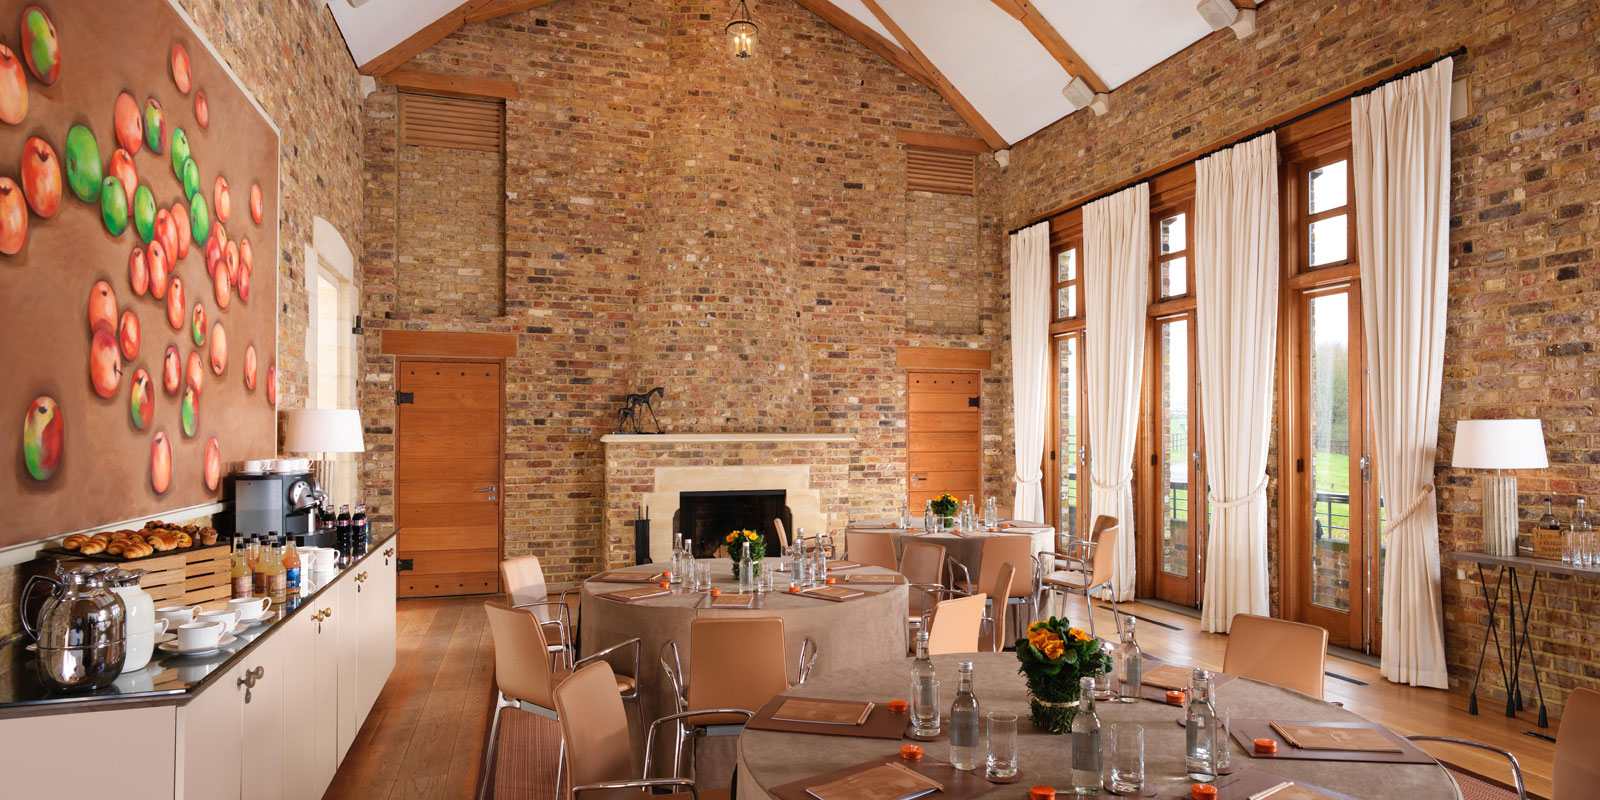 10 of the best private dining rooms the lrg blog for House plans with tower room